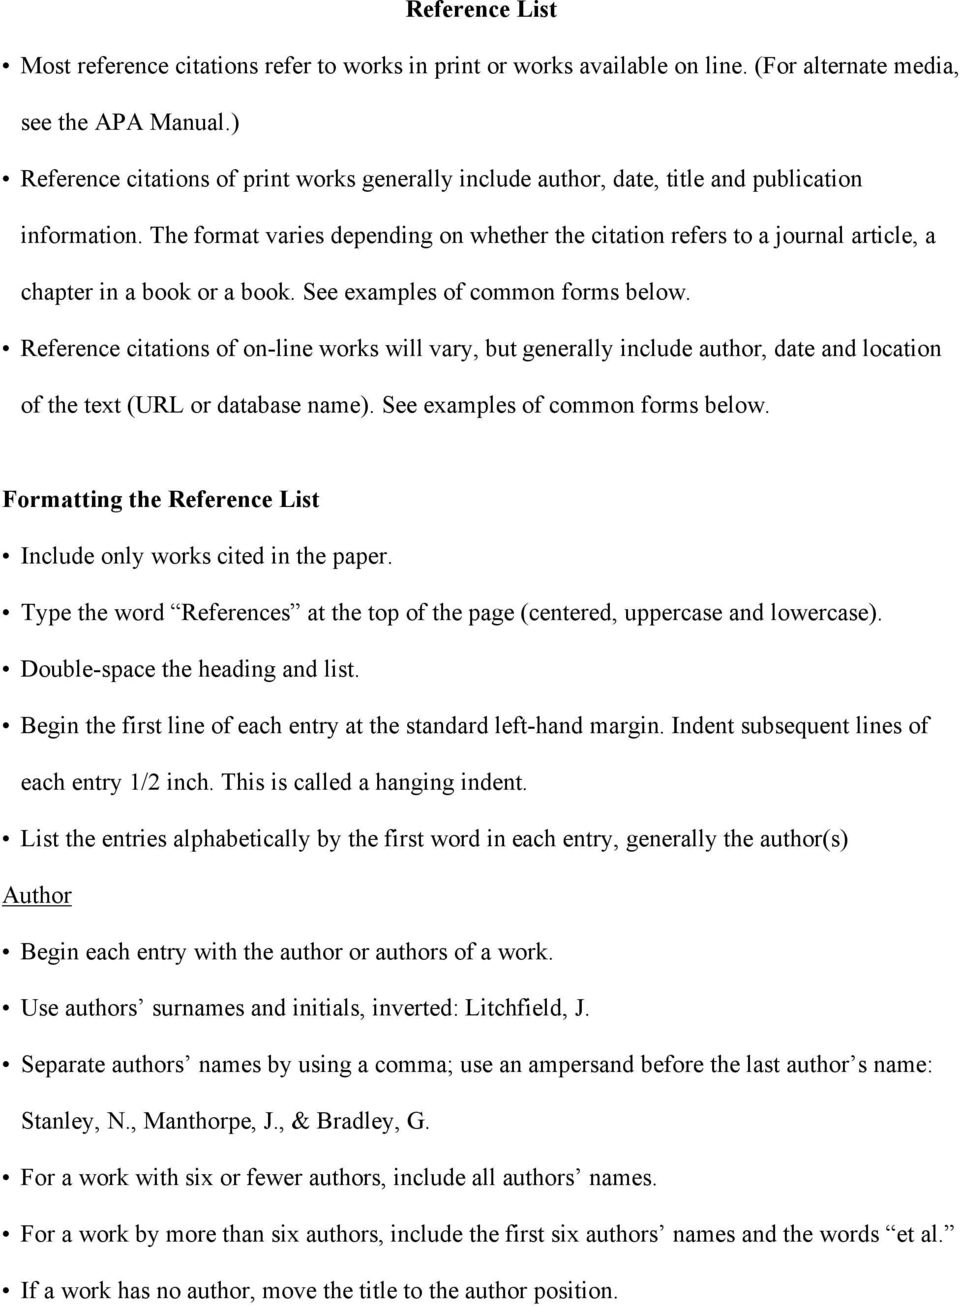 The format varies depending on whether the citation refers to a journal article, a chapter in a book or a book. See examples of common forms below.